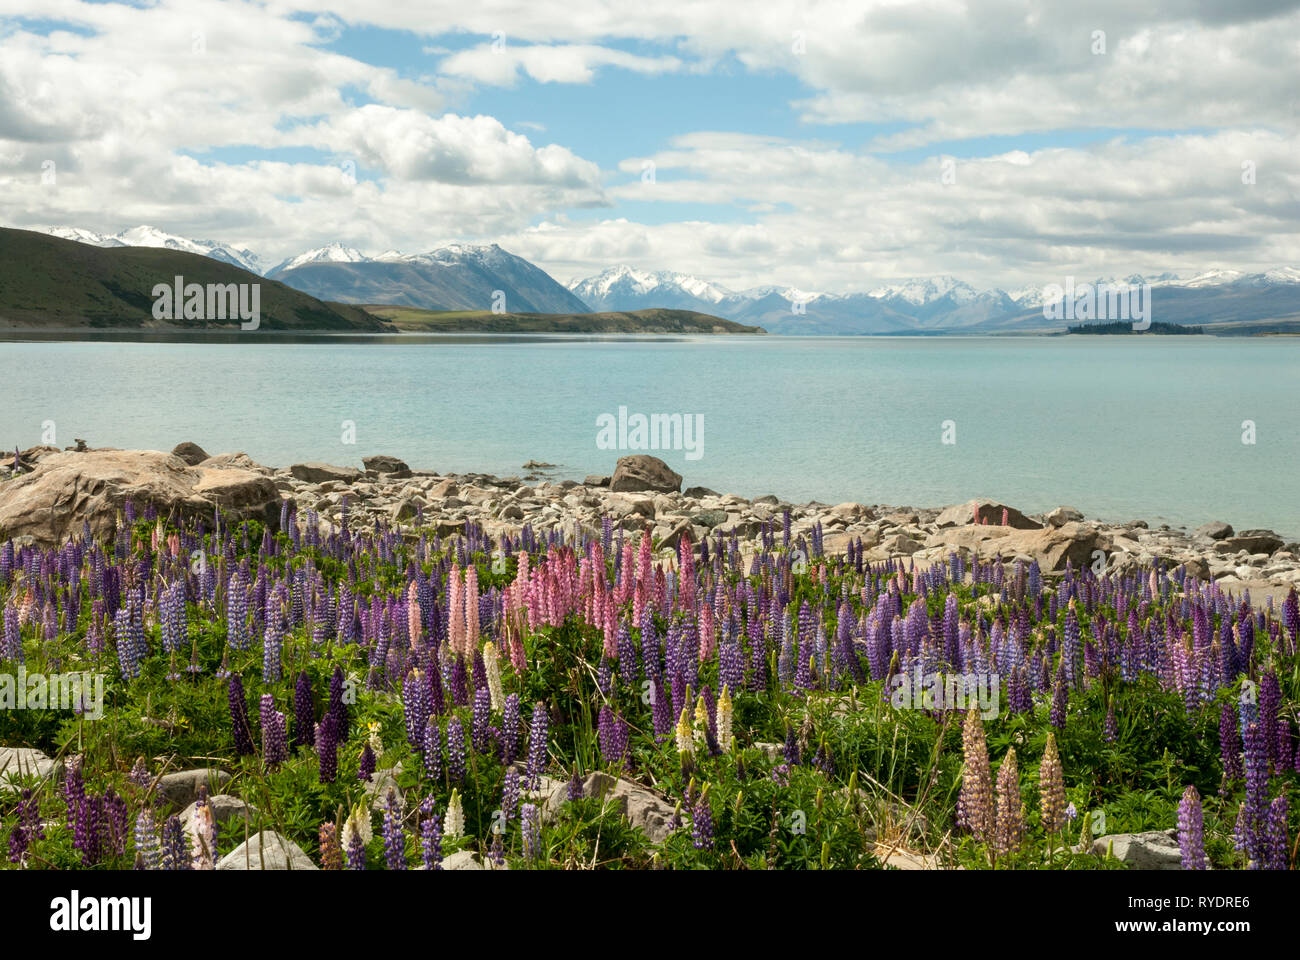 The stunning pale blue Lake Tekapo, New Zealand, with snow capped mountains in the background and colourful lupins in the foreground. Sunny day. Stock Photo